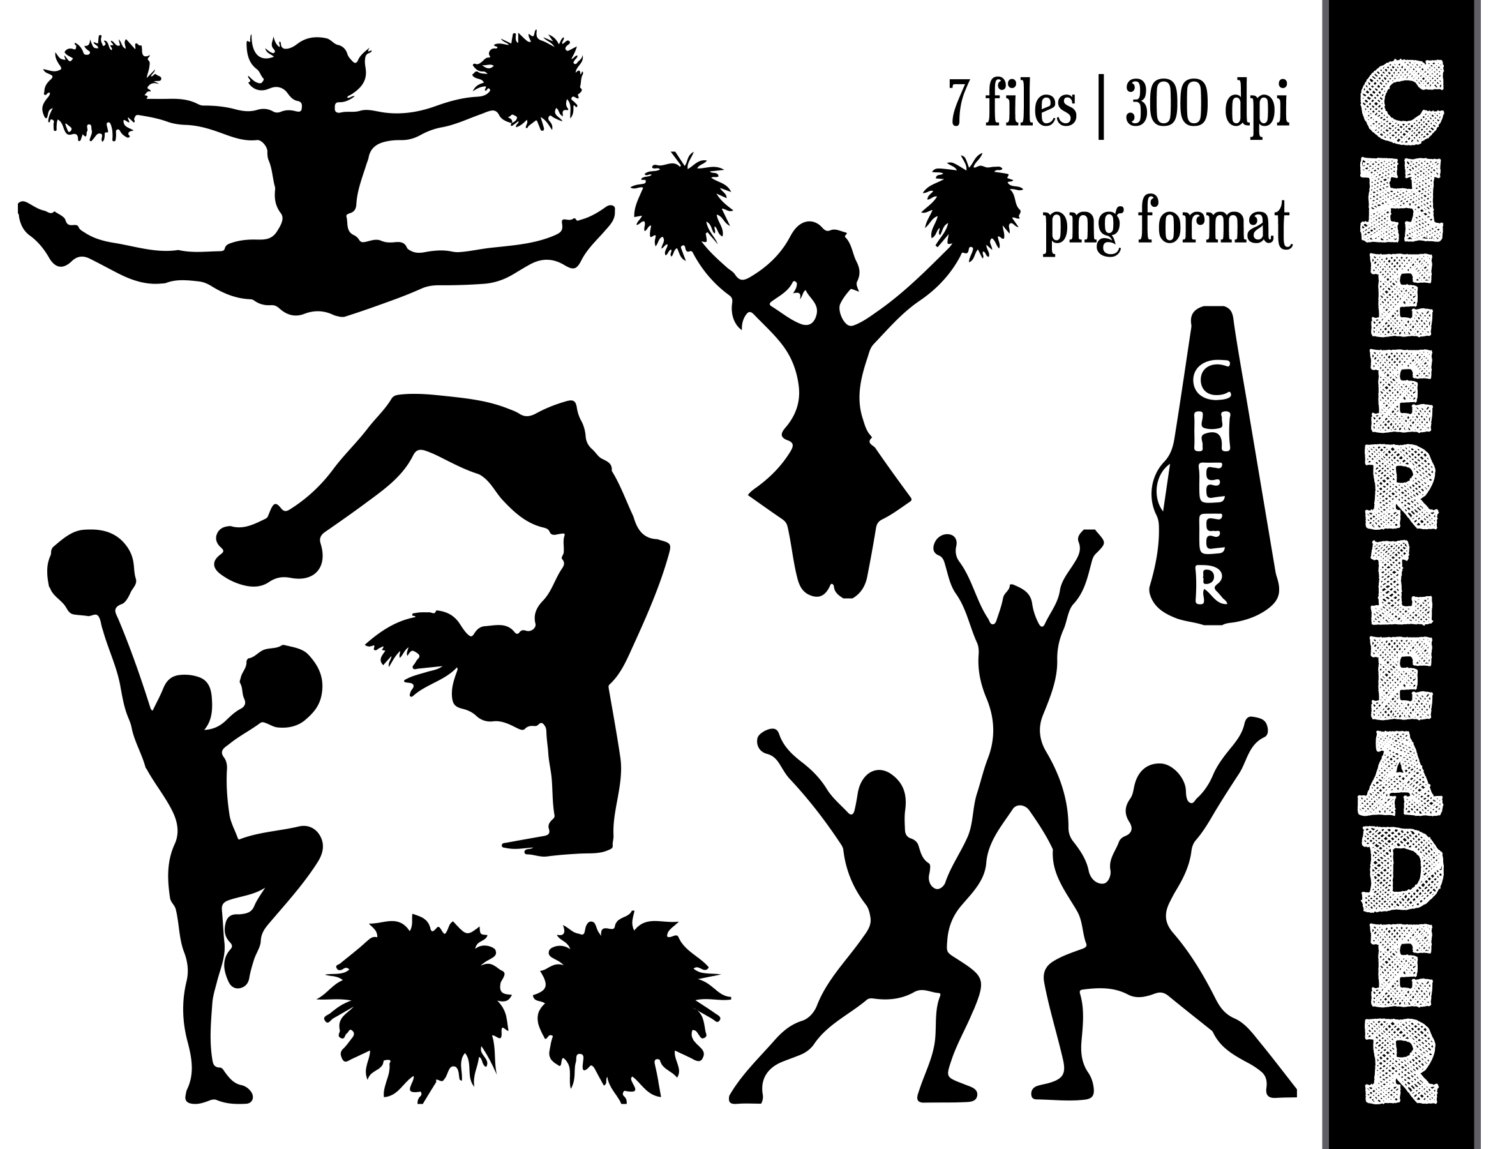 hight resolution of cheerleader silhouettes ch cheer clip art free